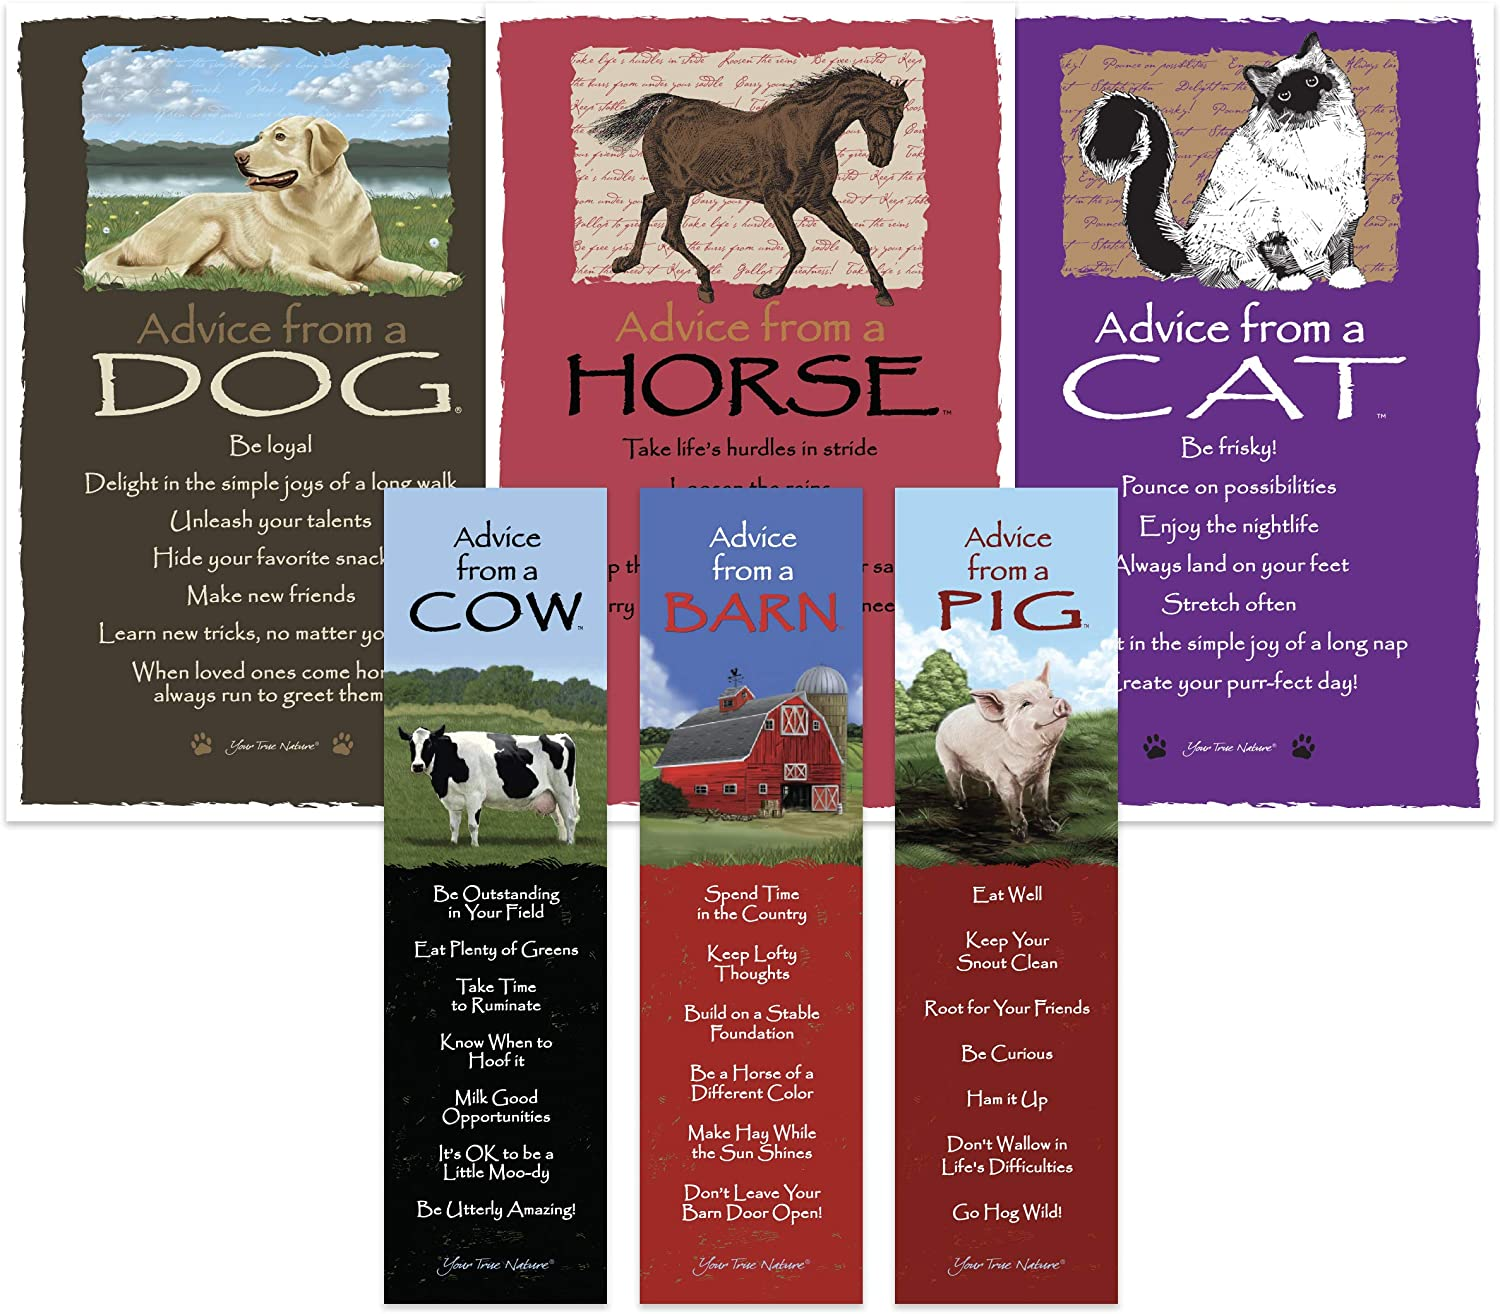 Advice from Nature Bookmark & Art Card Farm Set- 3 Bookmarks: Pig, Cow, Barn - 3 Art Cards: Horse, Cat, Dog by Your True Nature